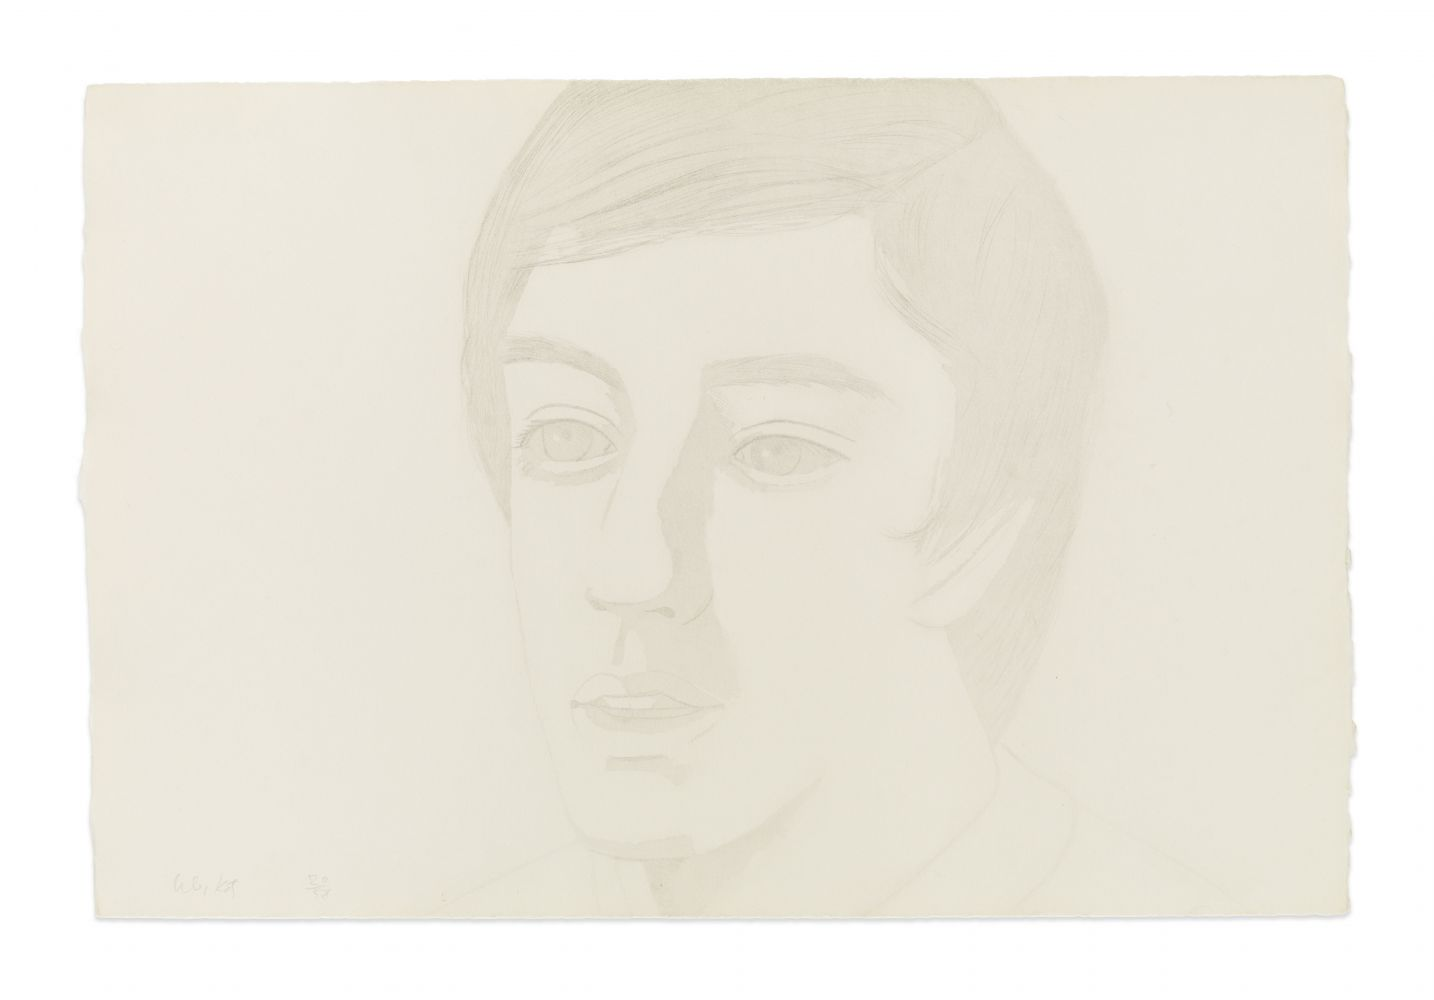 Drypoint portrait by Alex Katz featuring a faint 3/4 view of a man with his mouth slightly open